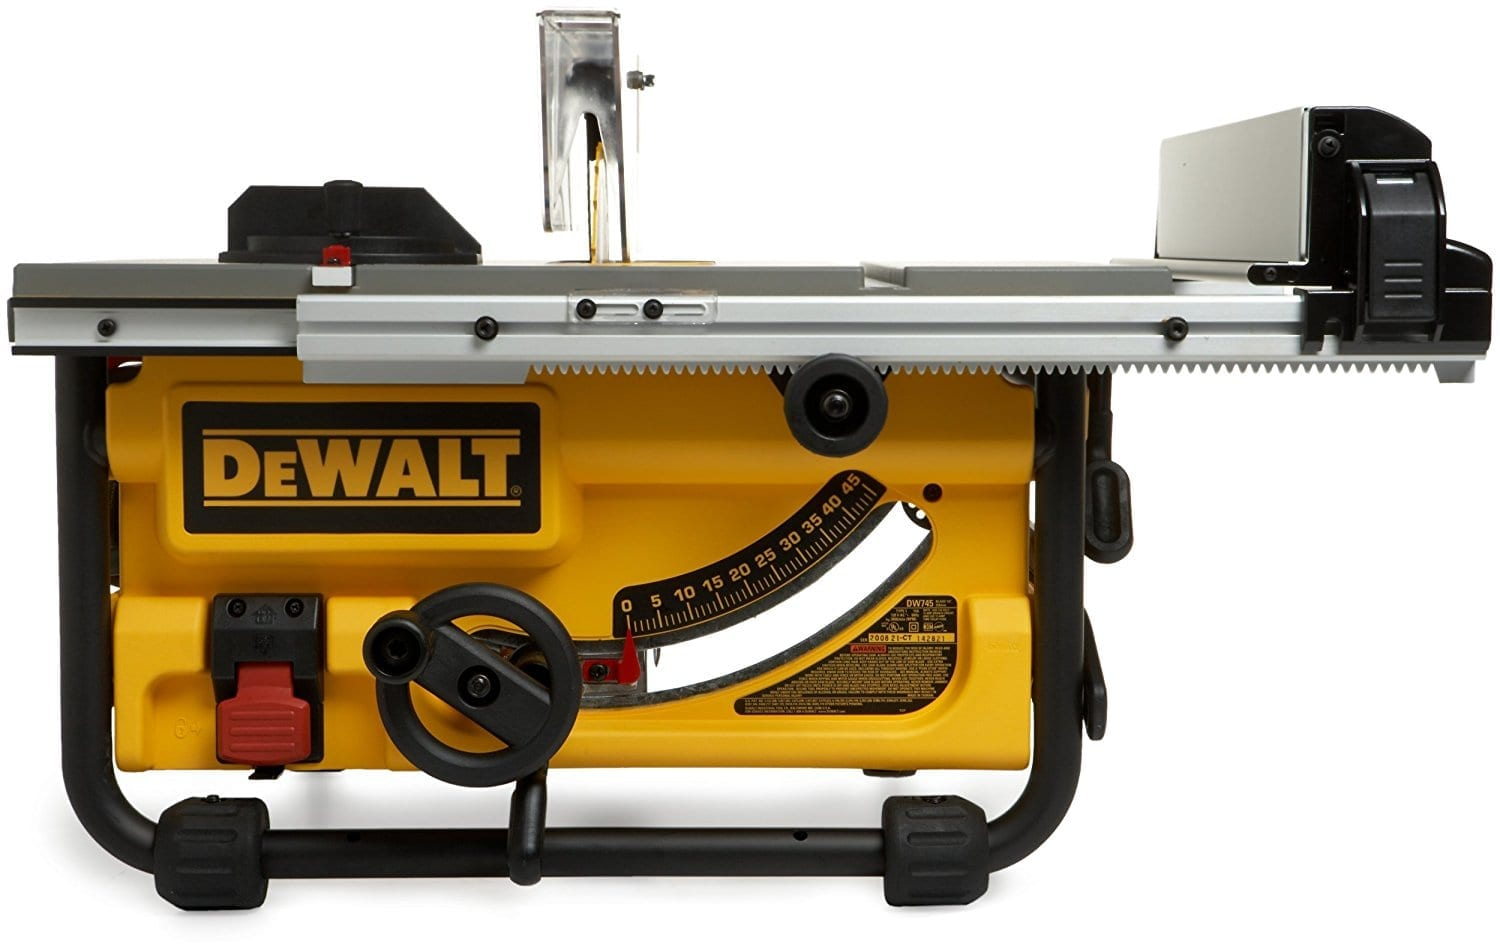 DeWalt DW745 Compact Jobsite Table Saw